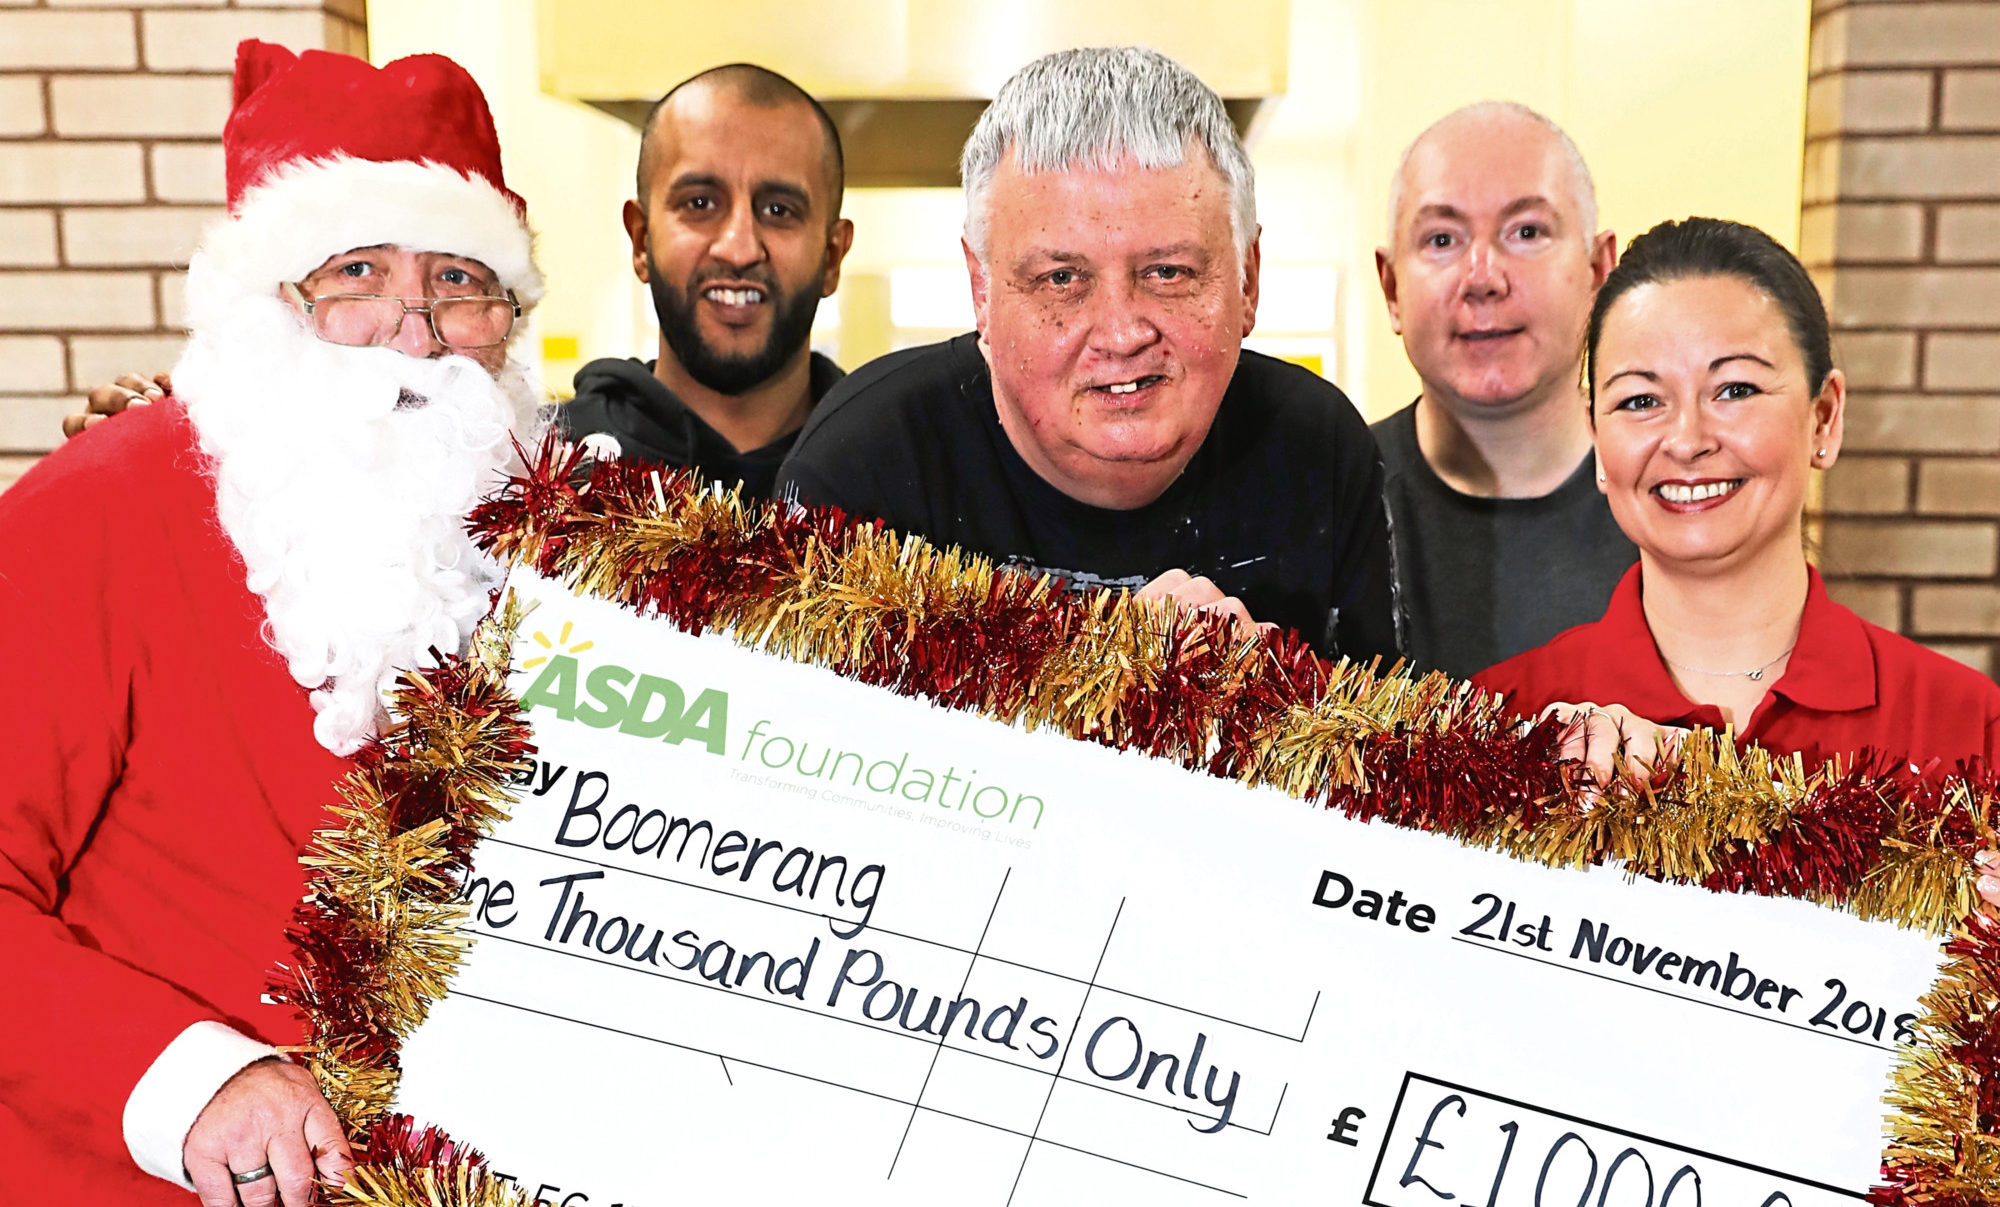 Centre manager Neil as Santa, with volunteers Imran Amin, Eddie Gardner and Stewart Mackay with Samantha and the cheque